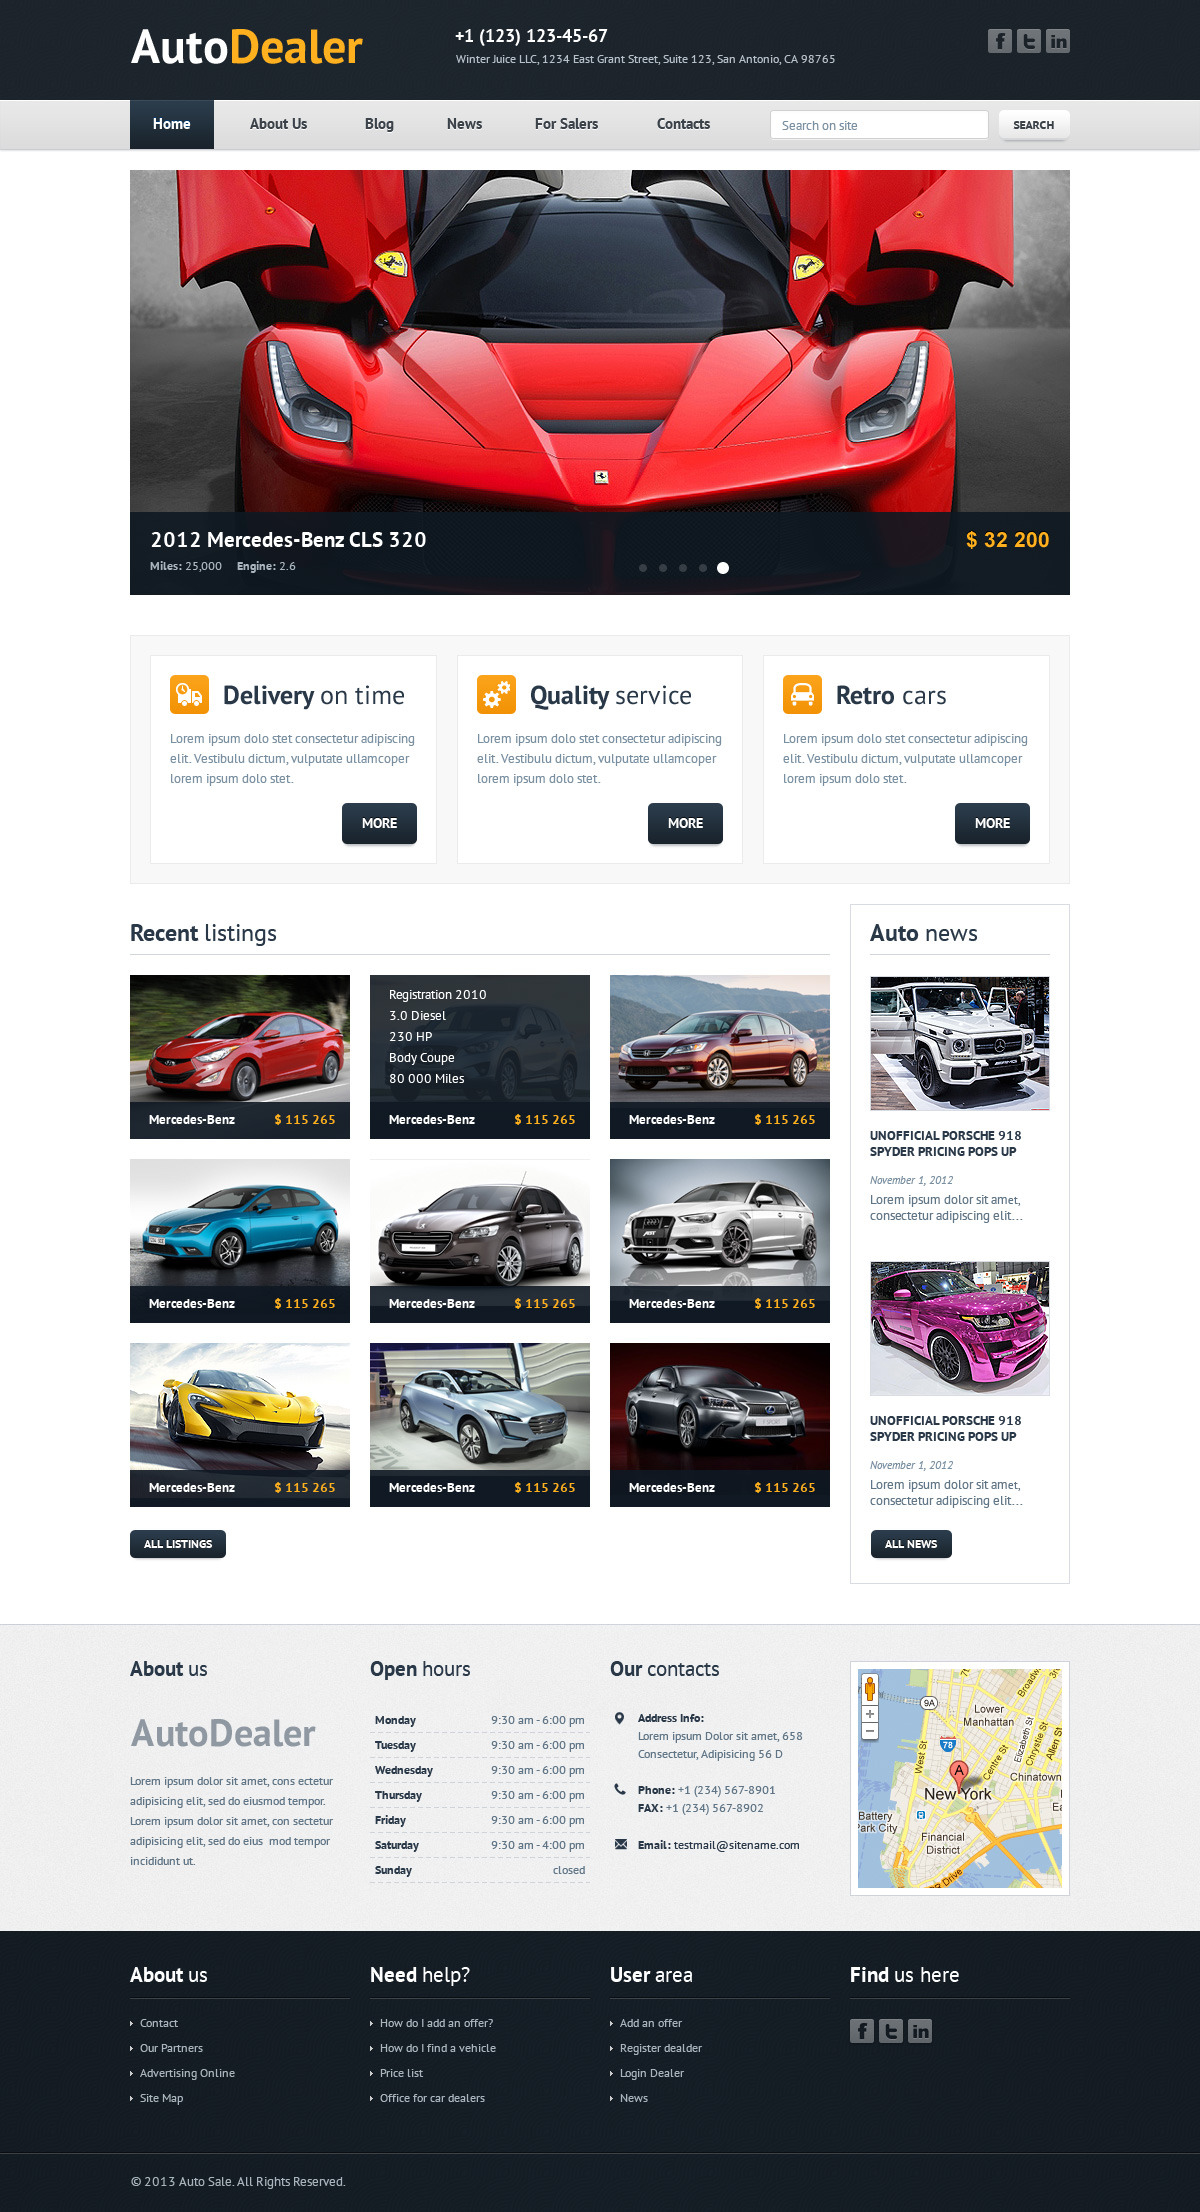 Auto Shop Invoice Template Pdf Download Car Sales Templates  Rabitahnet Blank Invoice Word Word with Professional Invoice Template Excel Pdf Auto Dealer  Car Dealer Html Template By Winterjuice  Themeforest Invoice  Templates How To Complete An Invoice Pdf